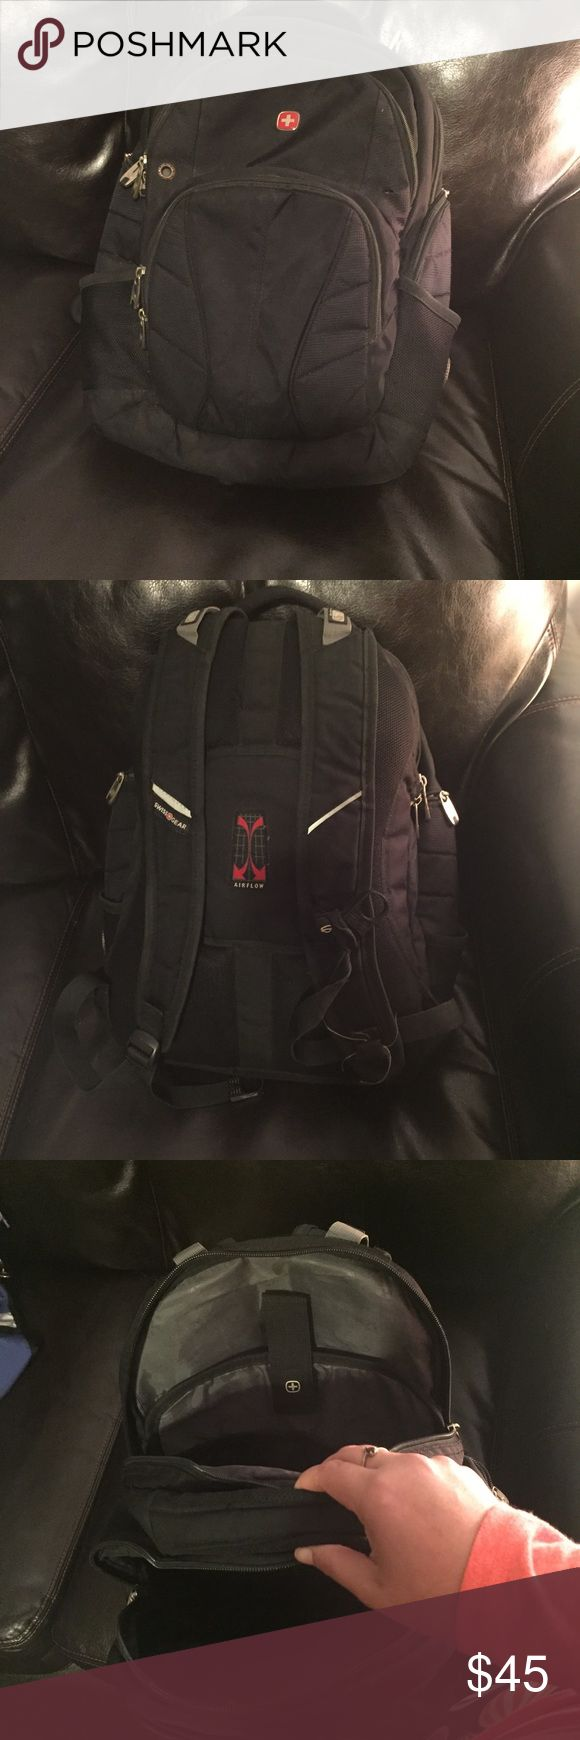 SWISSGEAR Black Backpack. Laptop sleeve. Black Back Pack . Swiss gear. Classic. Zippers a slight  tiny discoloration Spots. Not very noticeable at all. still looks and functions great!  a dime size of the cushion on the back is missing . Super smooth sliding zippers. SwissGear Bags Backpacks